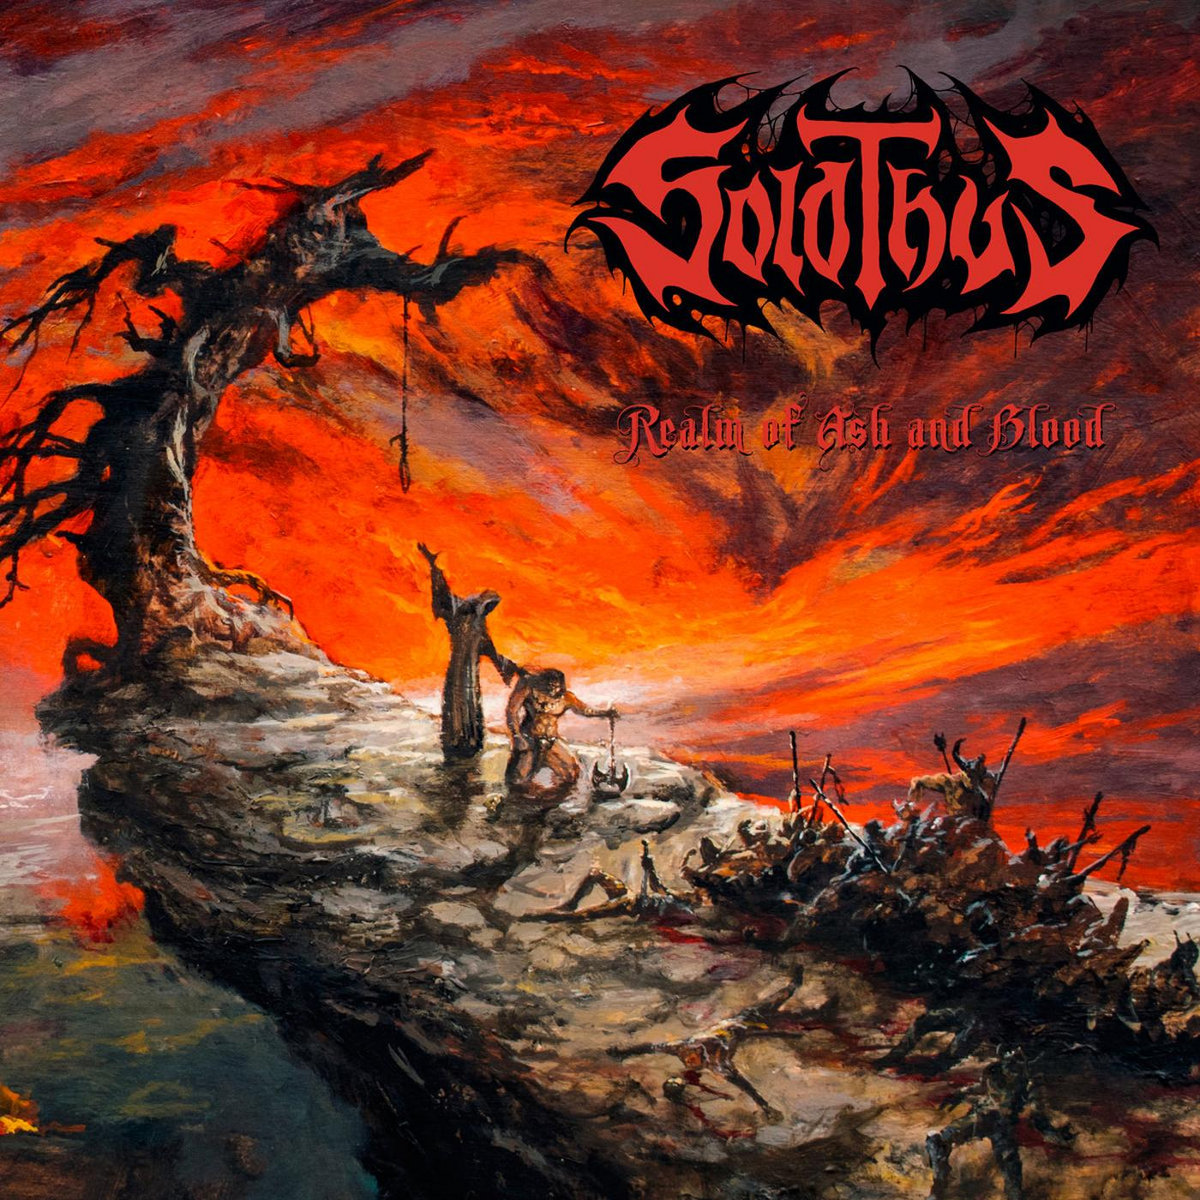 Solothus - Realm Of Ash And Blood - 2020